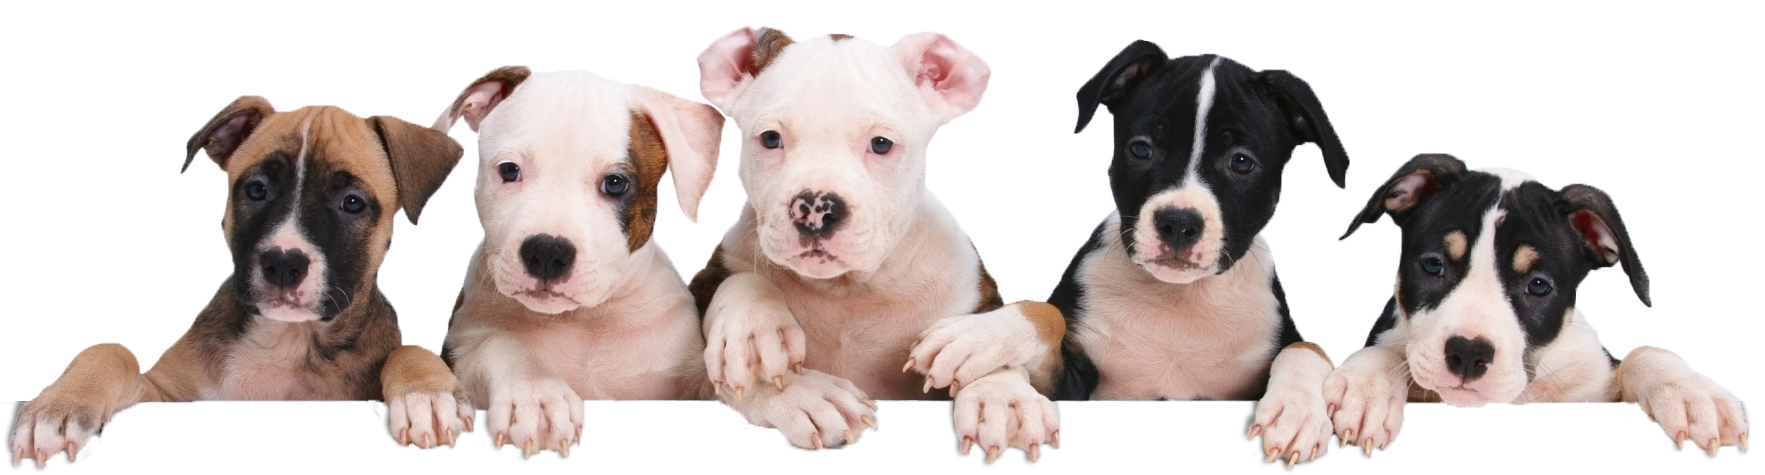 Petland joplin puppies for sale puppy products fish reptiles petland joplin cute puppies for sale solutioingenieria Choice Image